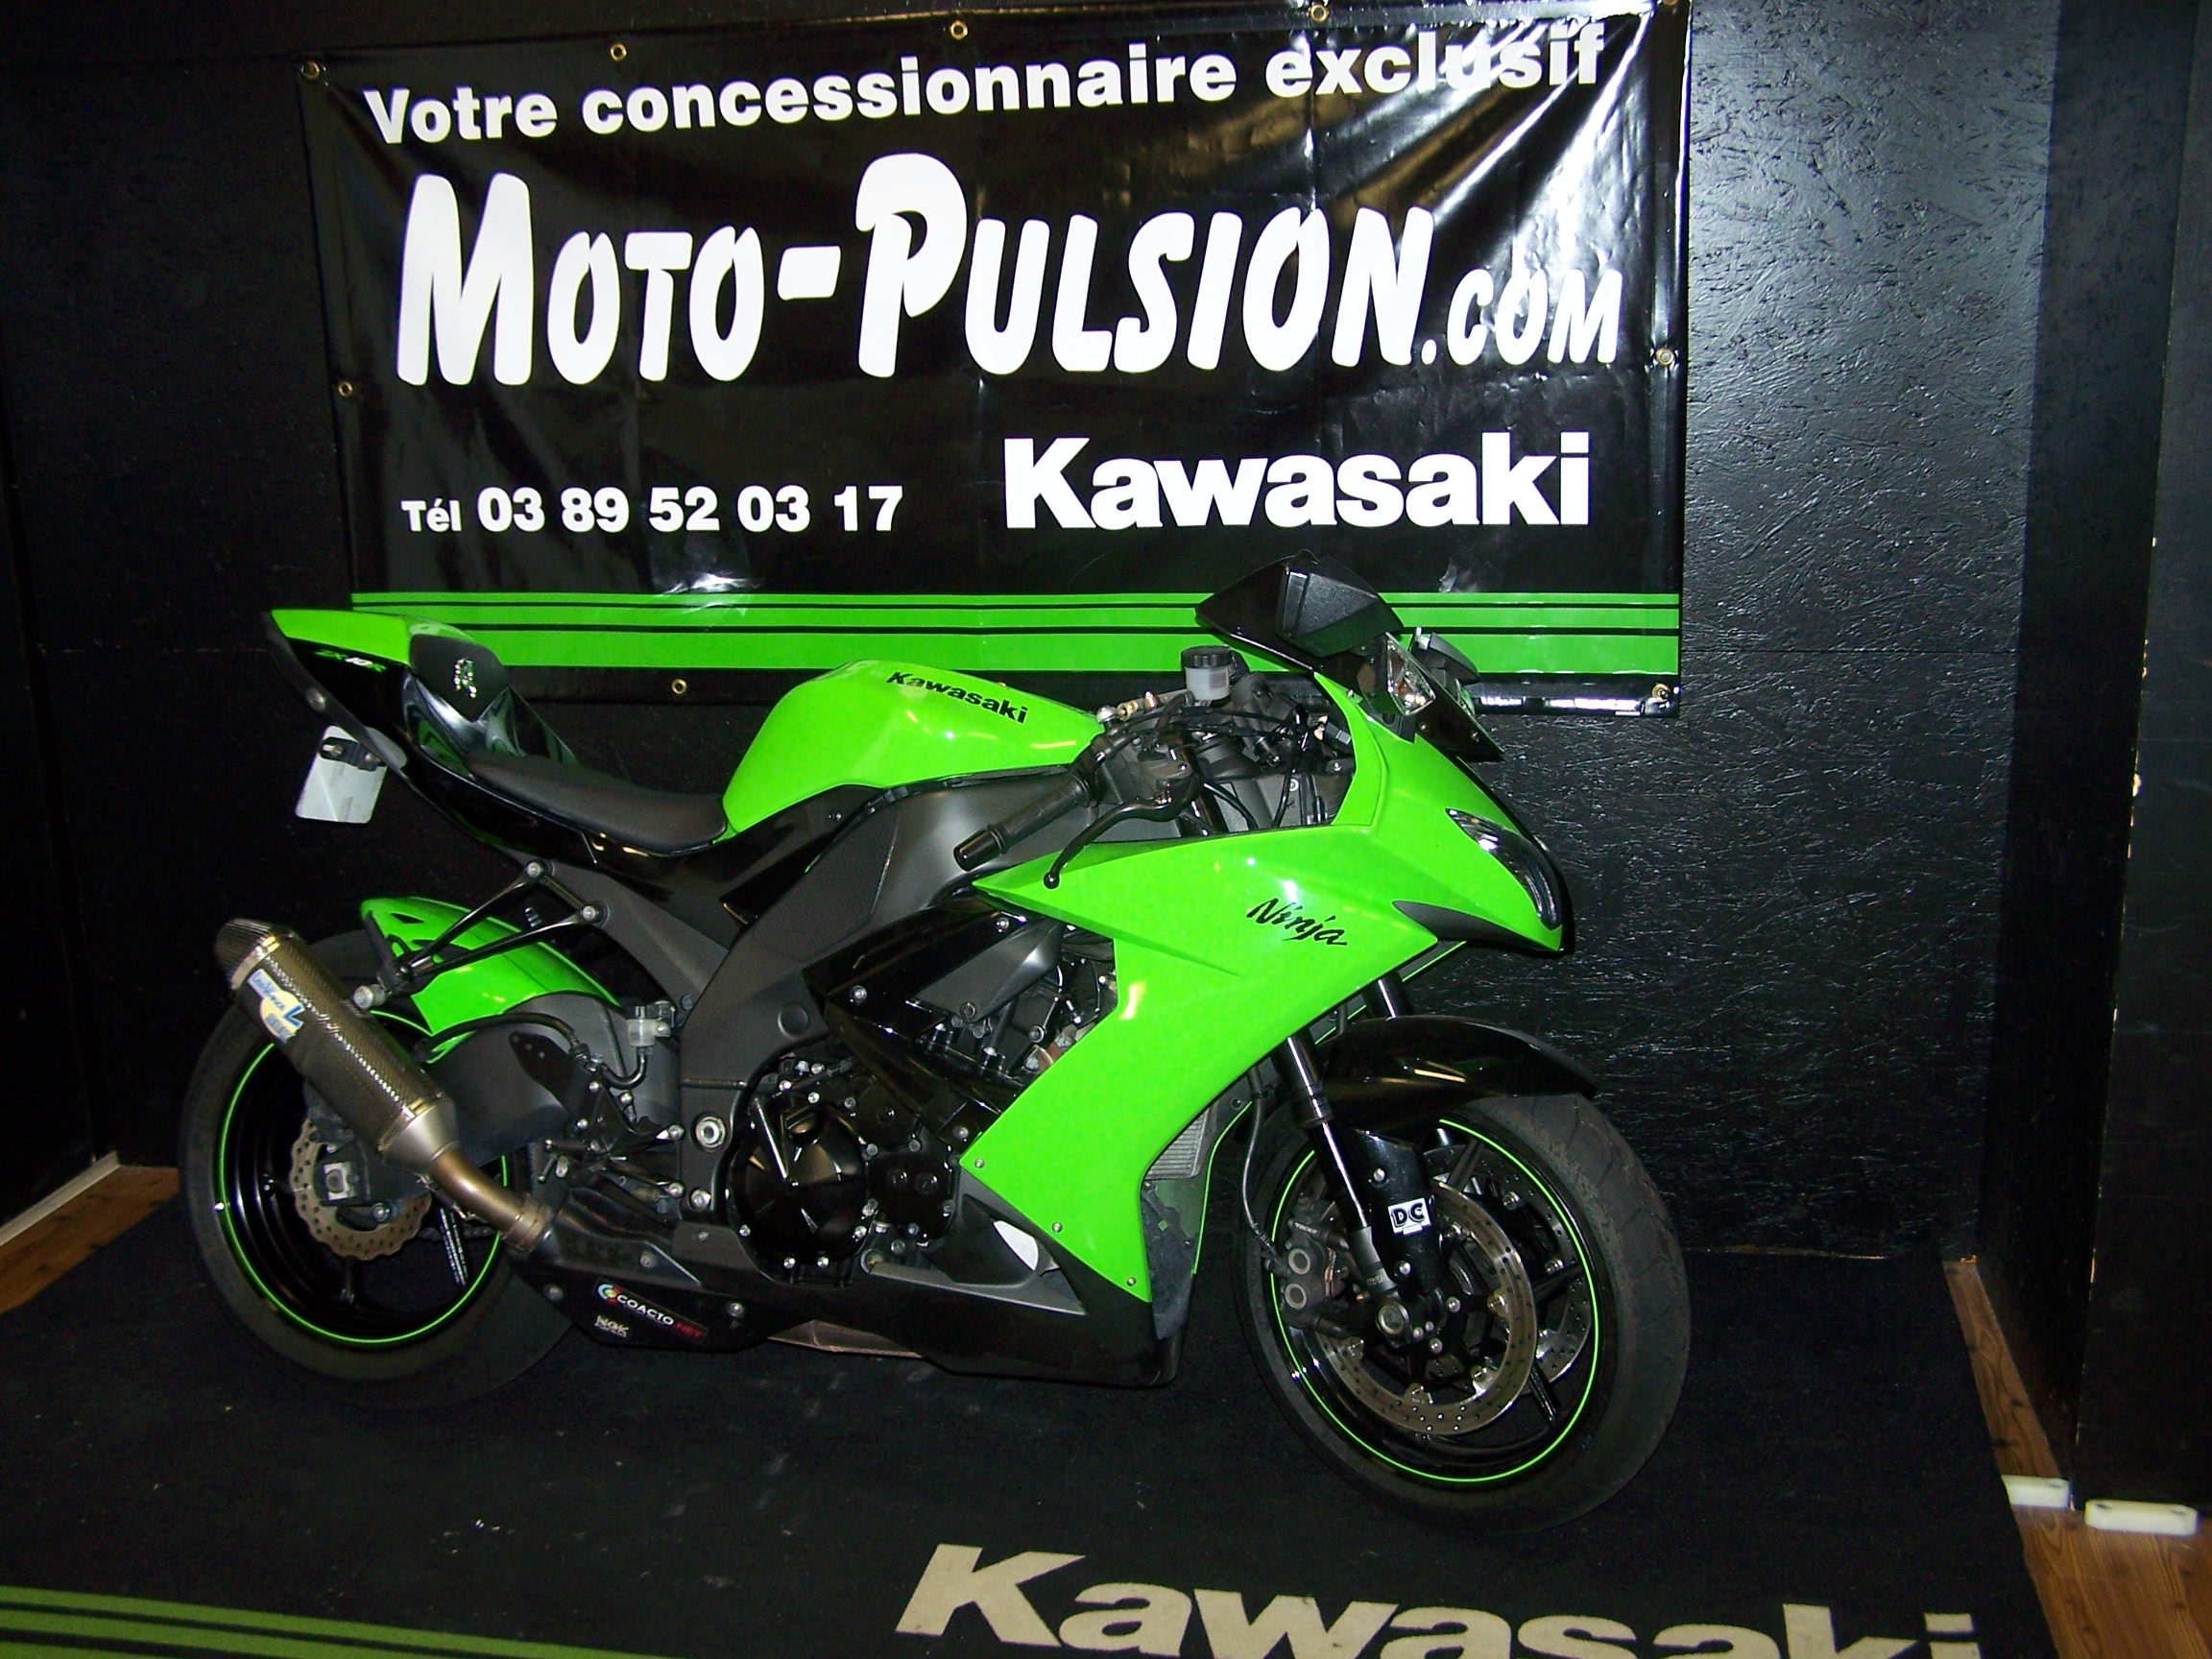 kawasaki zx10 r sportive occasion moto pulsion concessionnaire moto exclusif kawasaki en. Black Bedroom Furniture Sets. Home Design Ideas